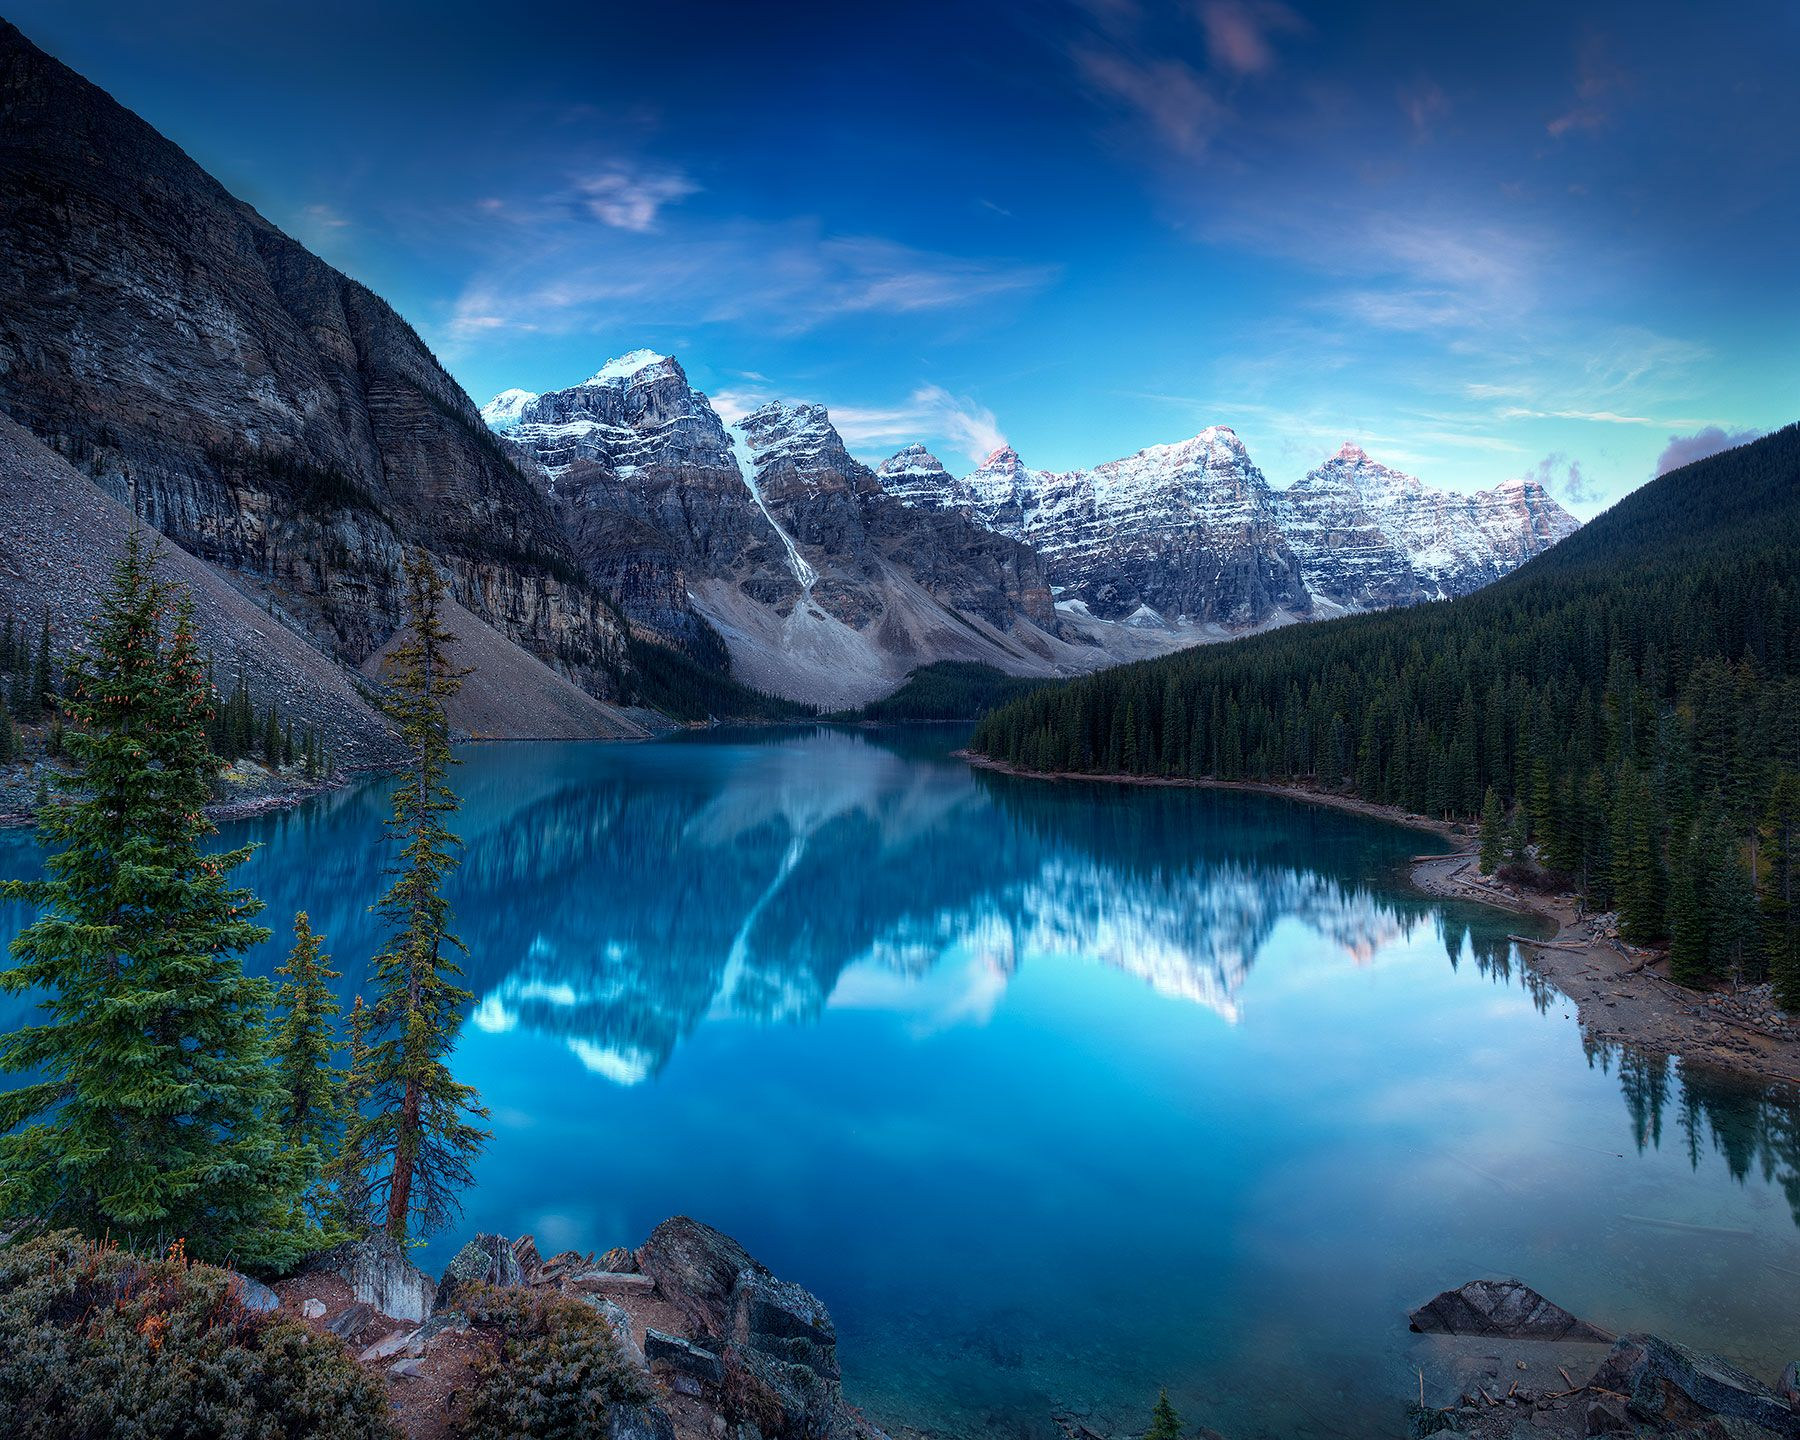 Moraine-2---1800-no-WM.jpg